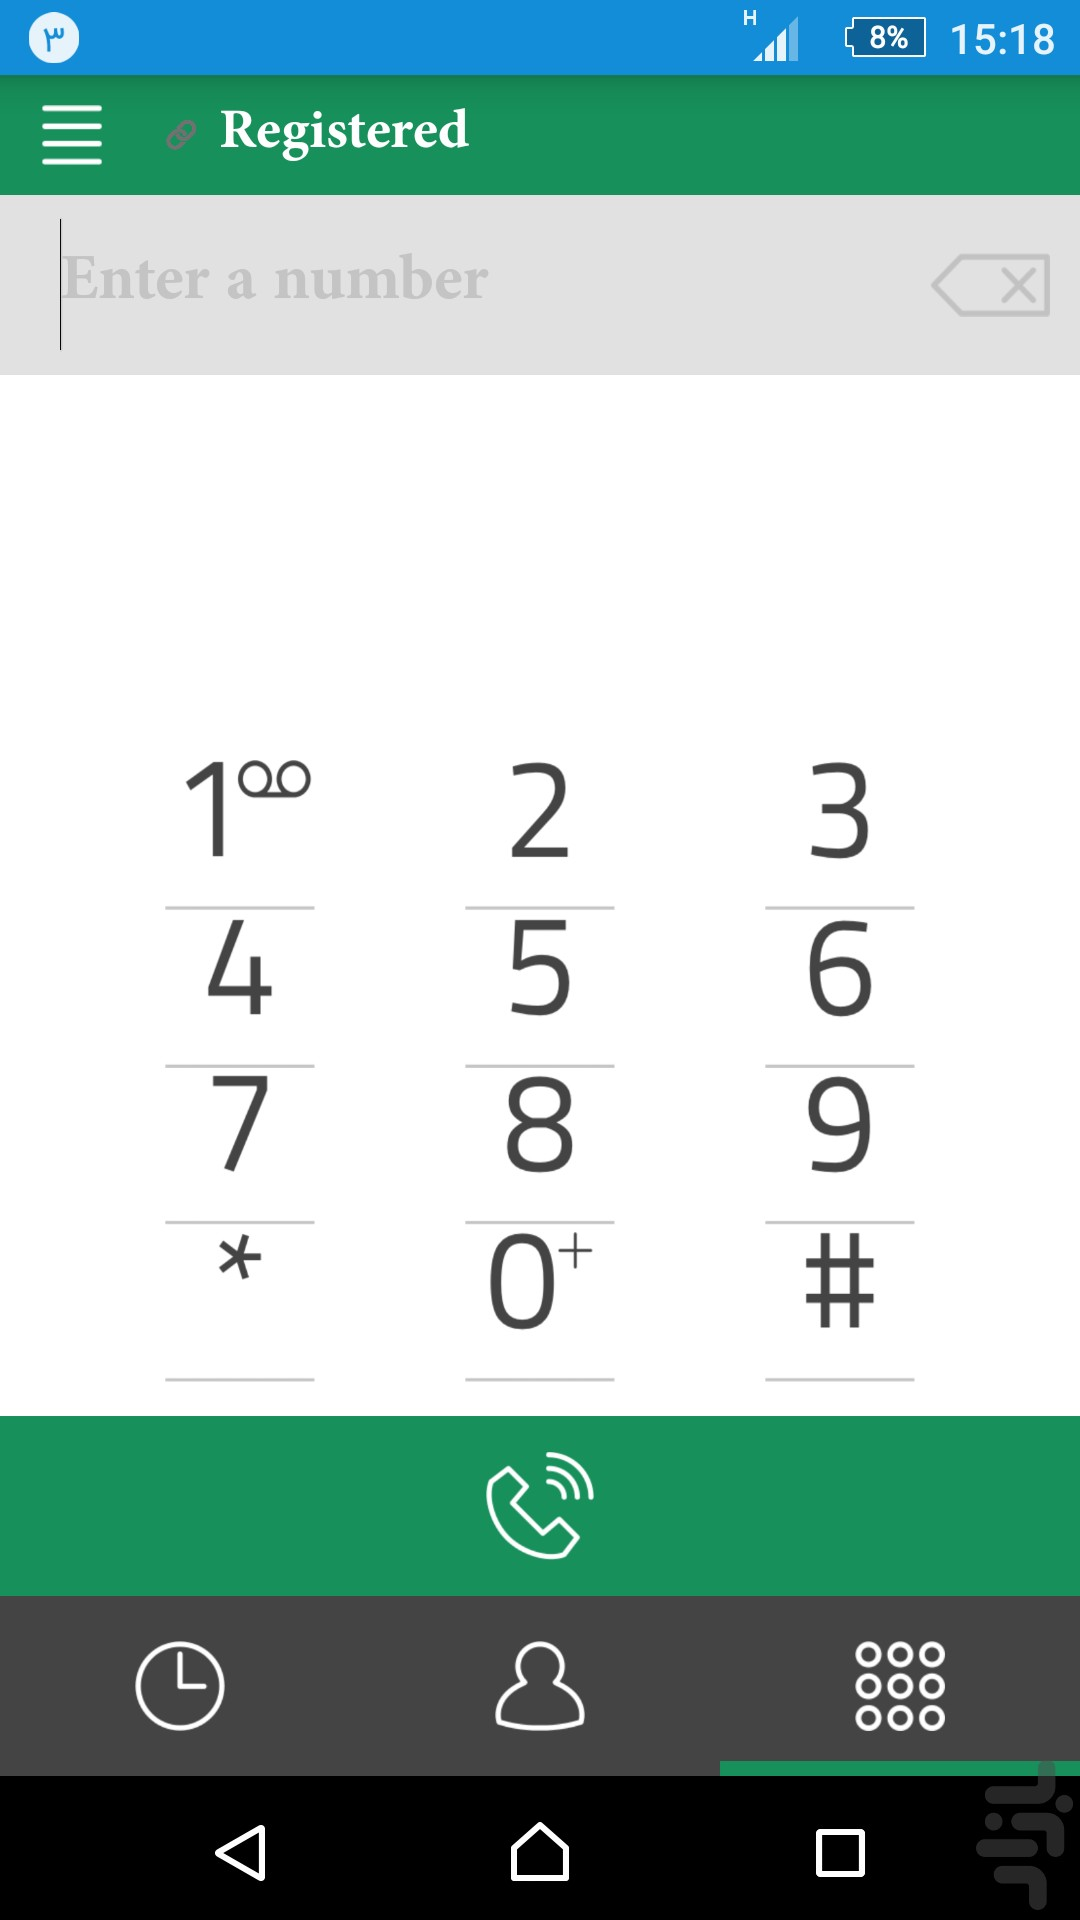 ViraTel Softphone for Android - Download | Cafe Bazaar